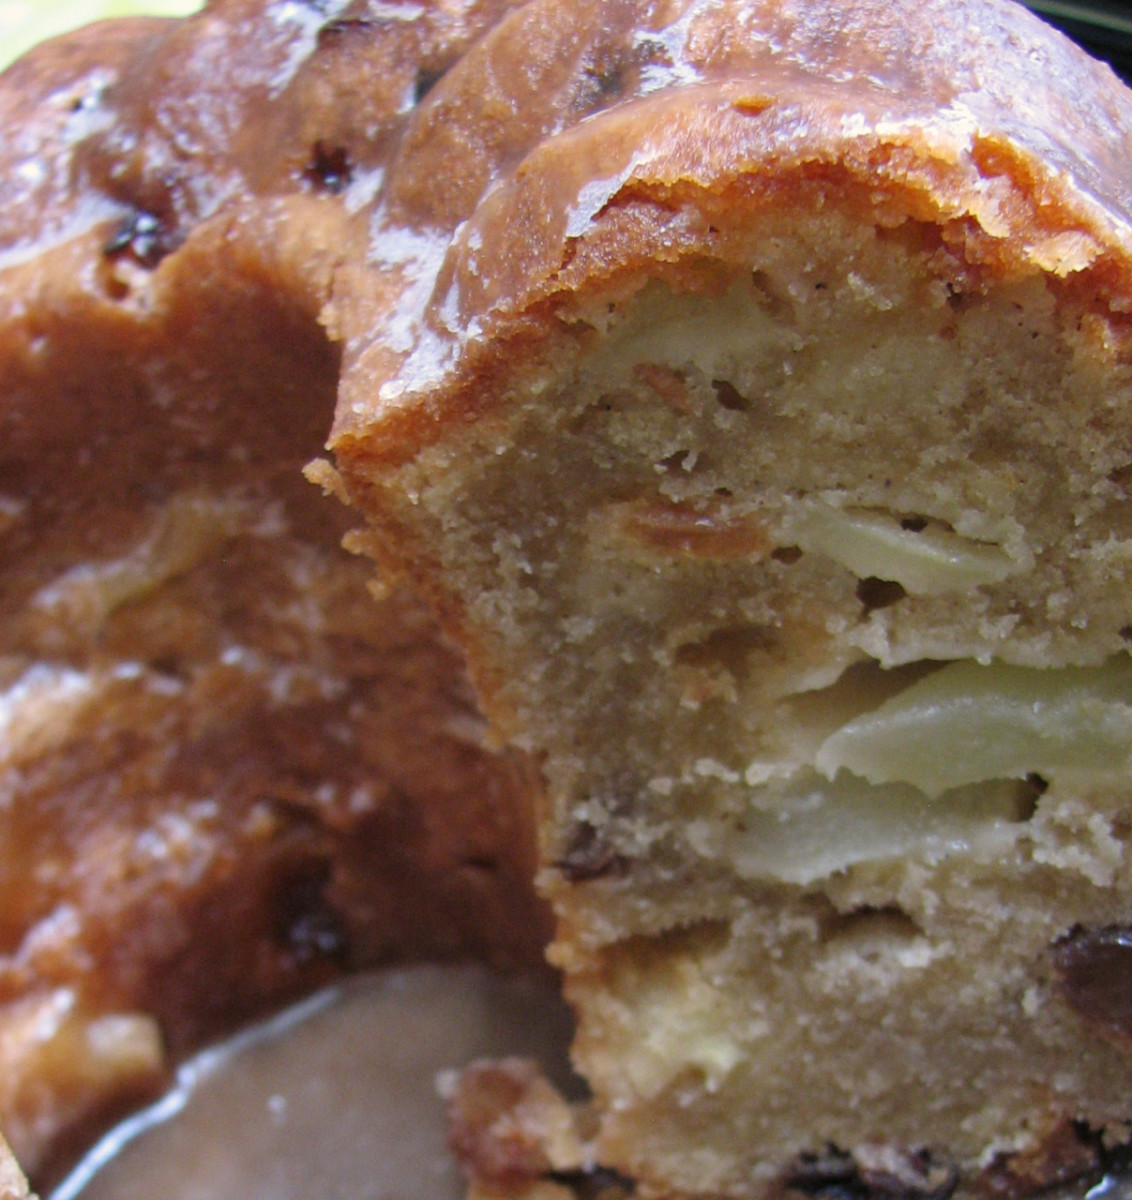 Juicy apple pieces and sultanas in the bundt cake. This cake did not last long!